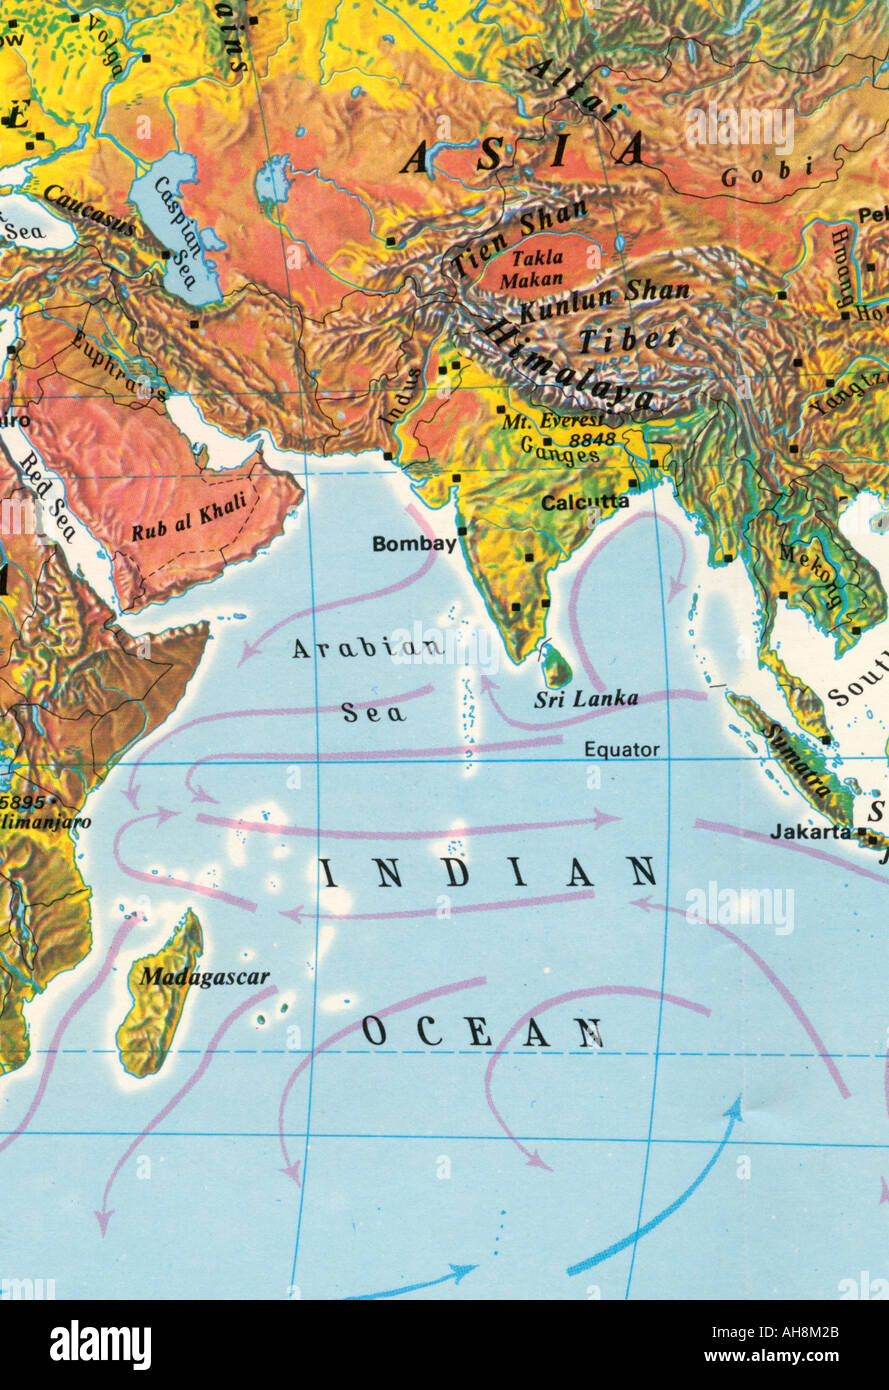 Map of India Asia and Indian Ocean Arabian sea Sri Lanka Equator